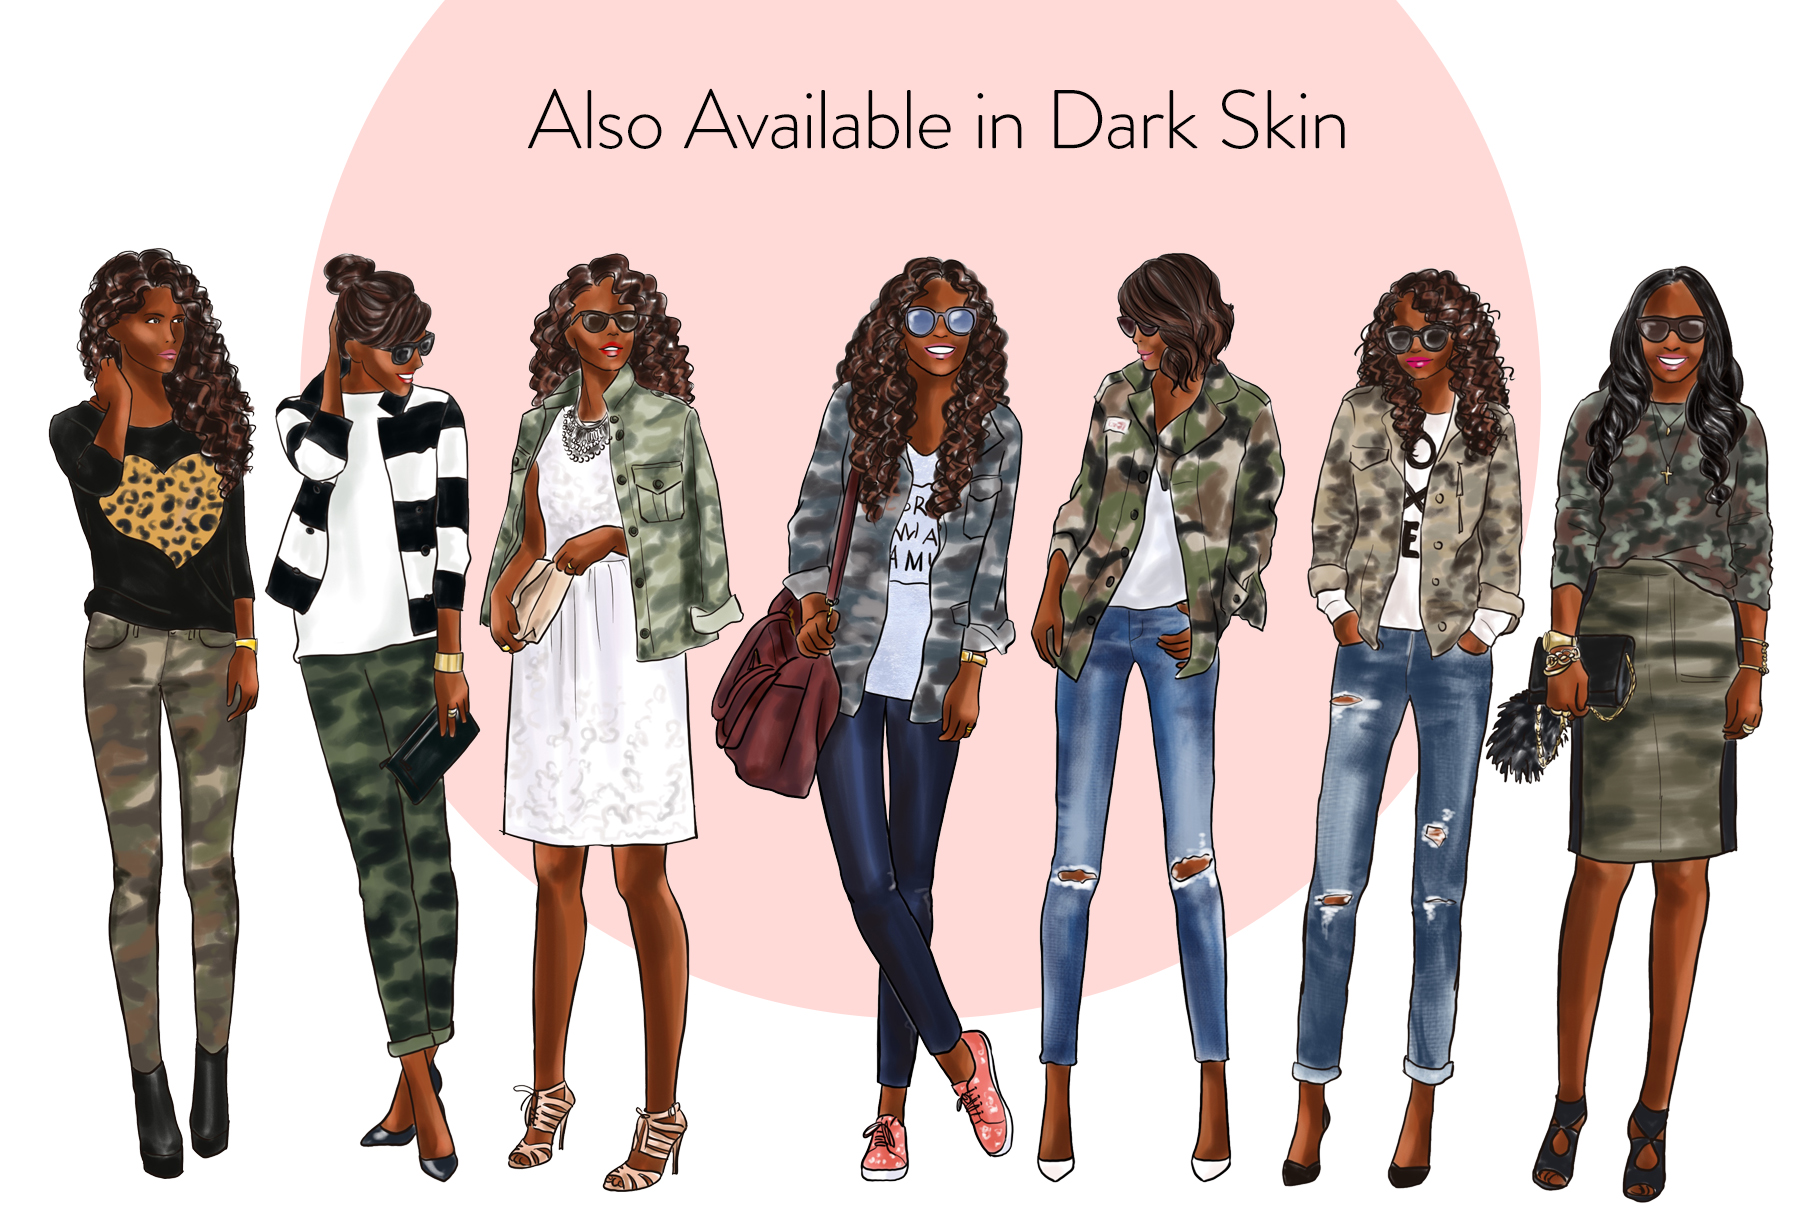 Fashion illustration clipart - Girls in Camo - Light Skin example image 4